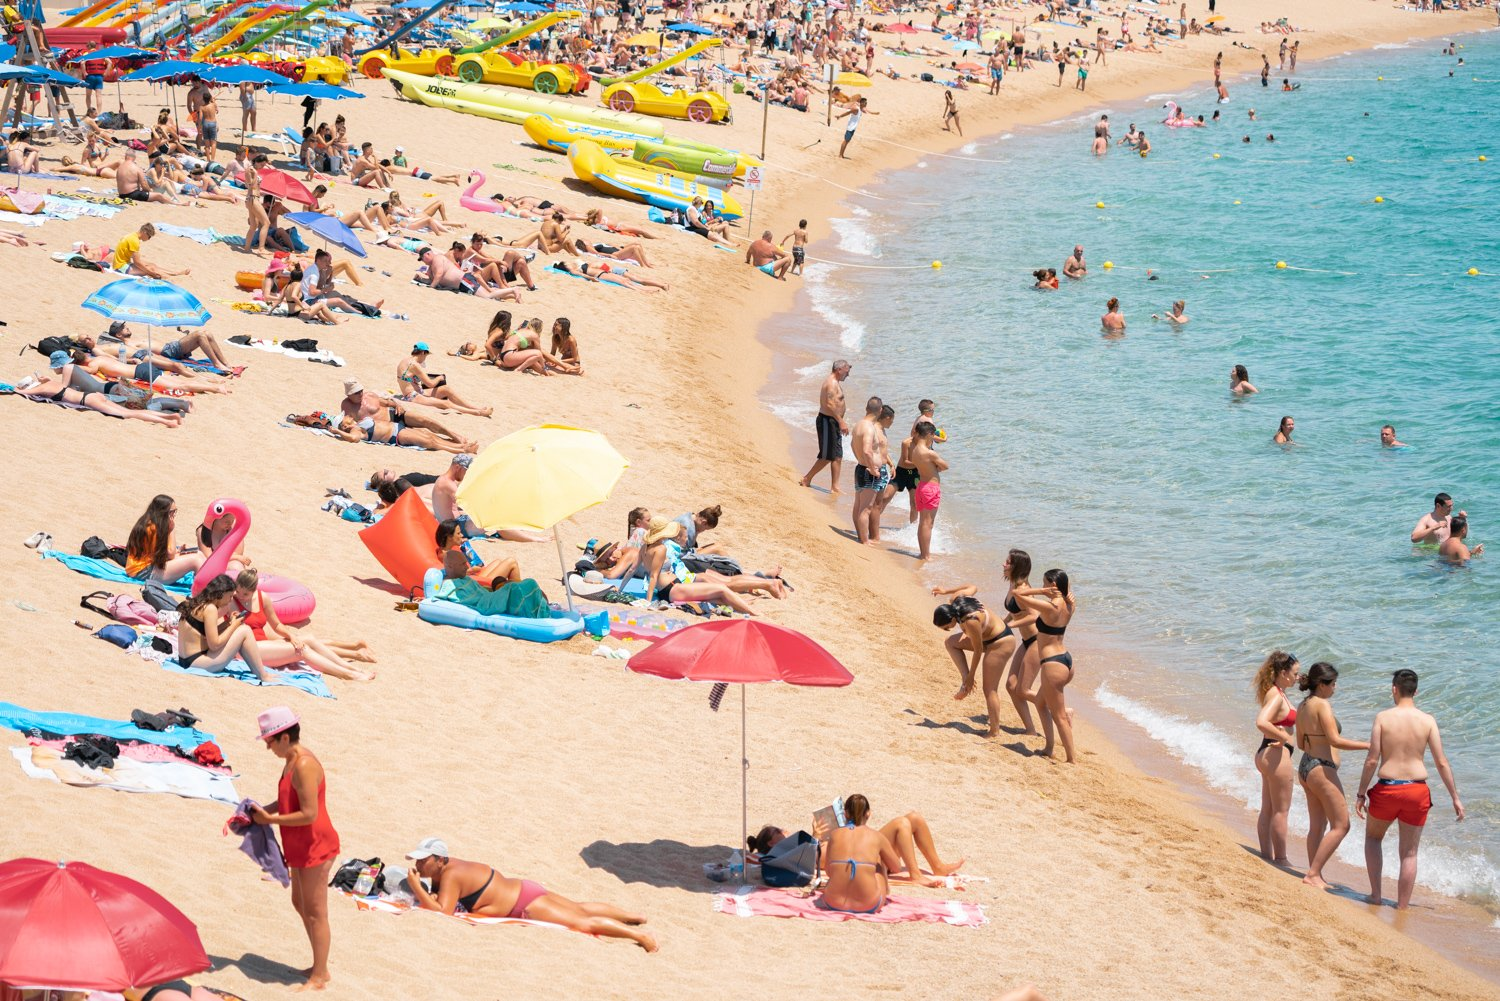 Colors of umbrellas, sand and people on Lloret de Mar beach